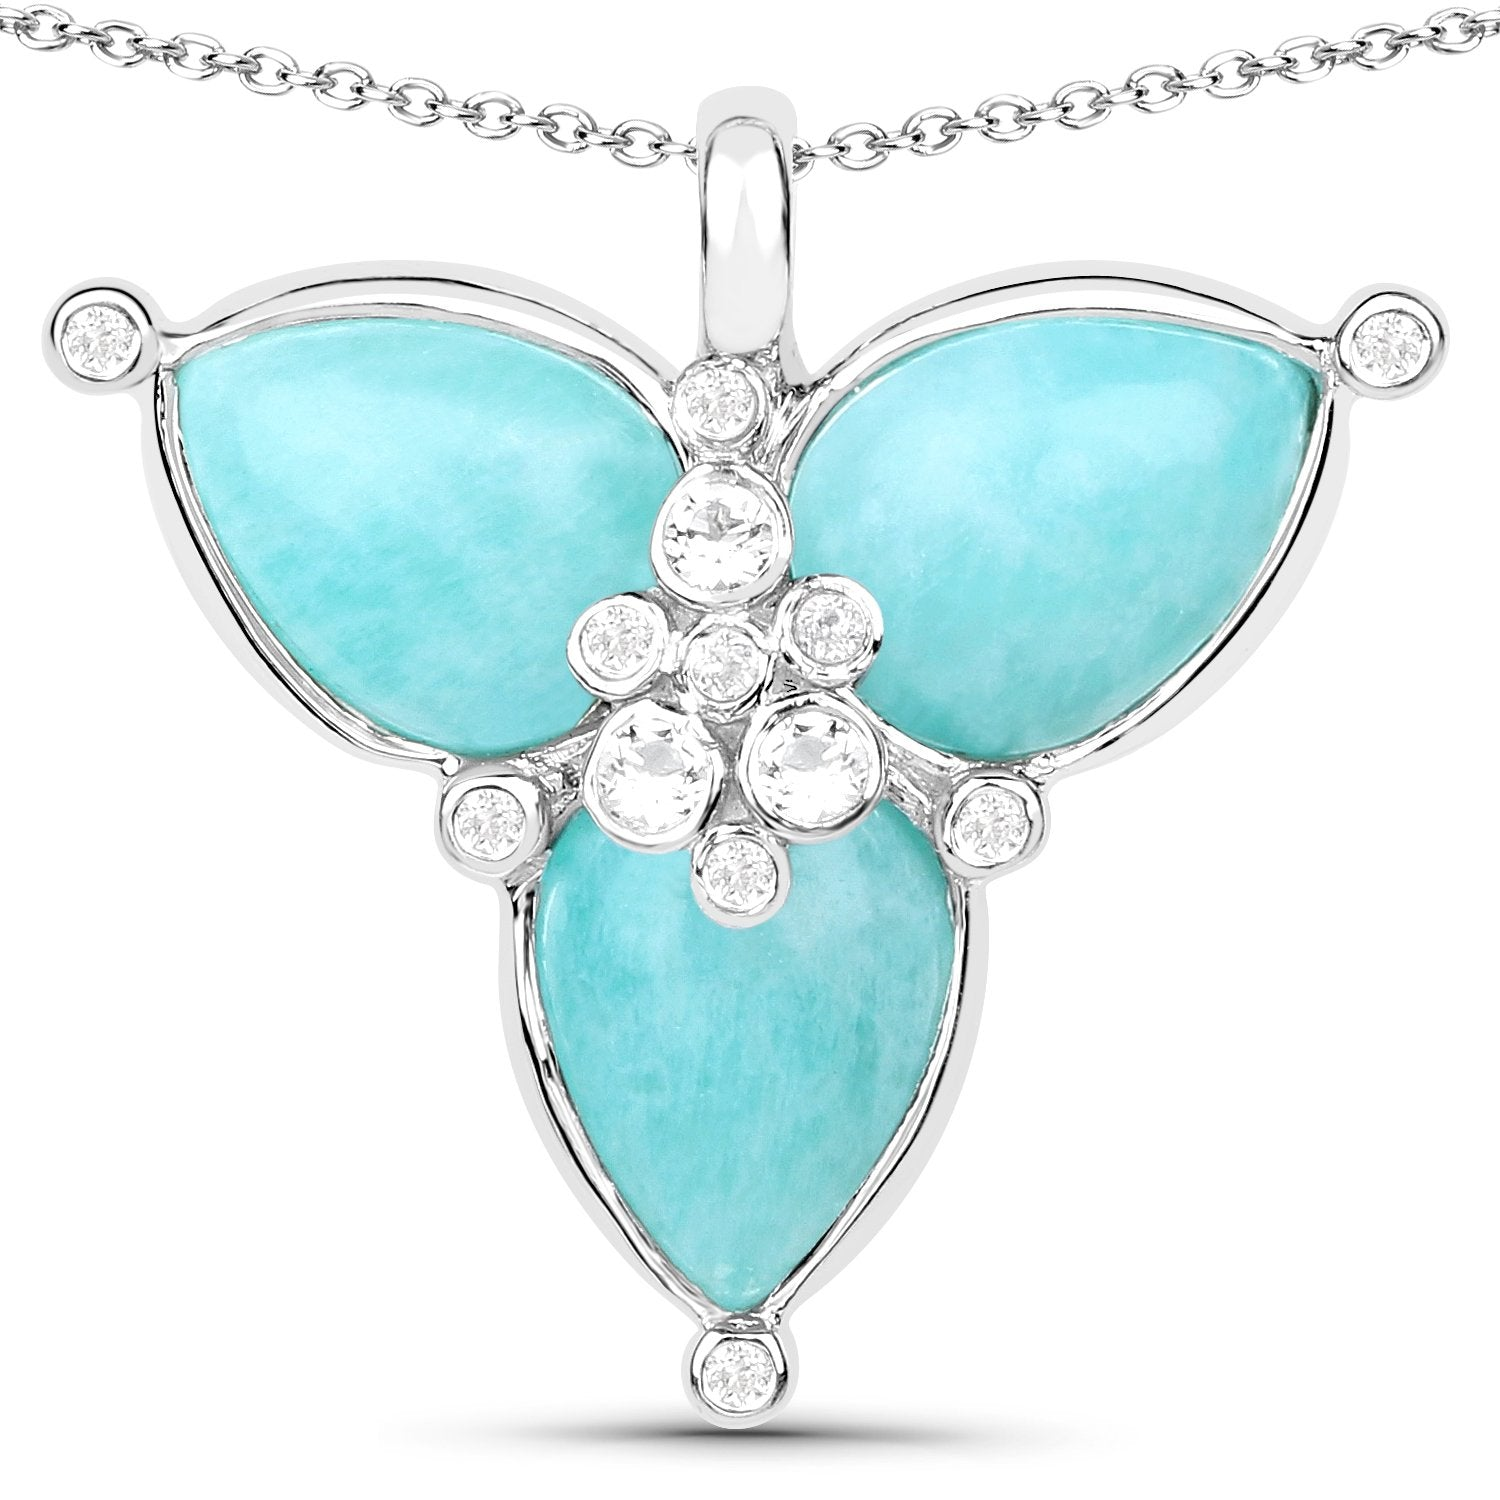 LoveHuang 4.51 Carats Genuine Amazonite and White Topaz Petal Pendant Solid .925 Sterling Silver With Rhodium Plating, 18Inch Chain